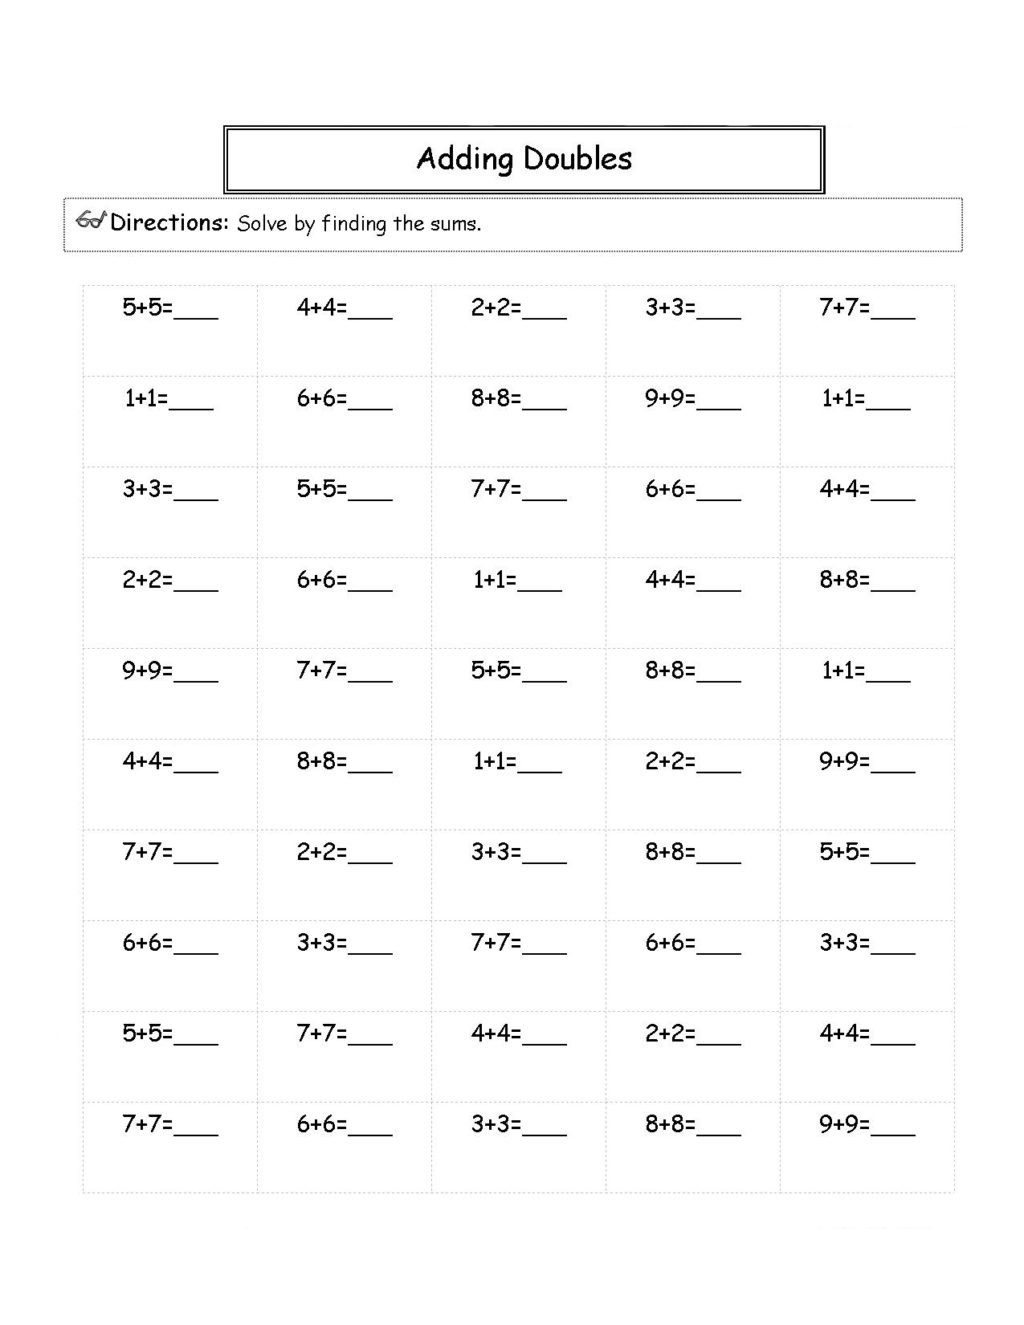 Adding Doubles Worksheet 2nd Grade Worksheet 2nd Grade Math Worksheets Best Coloring Pages